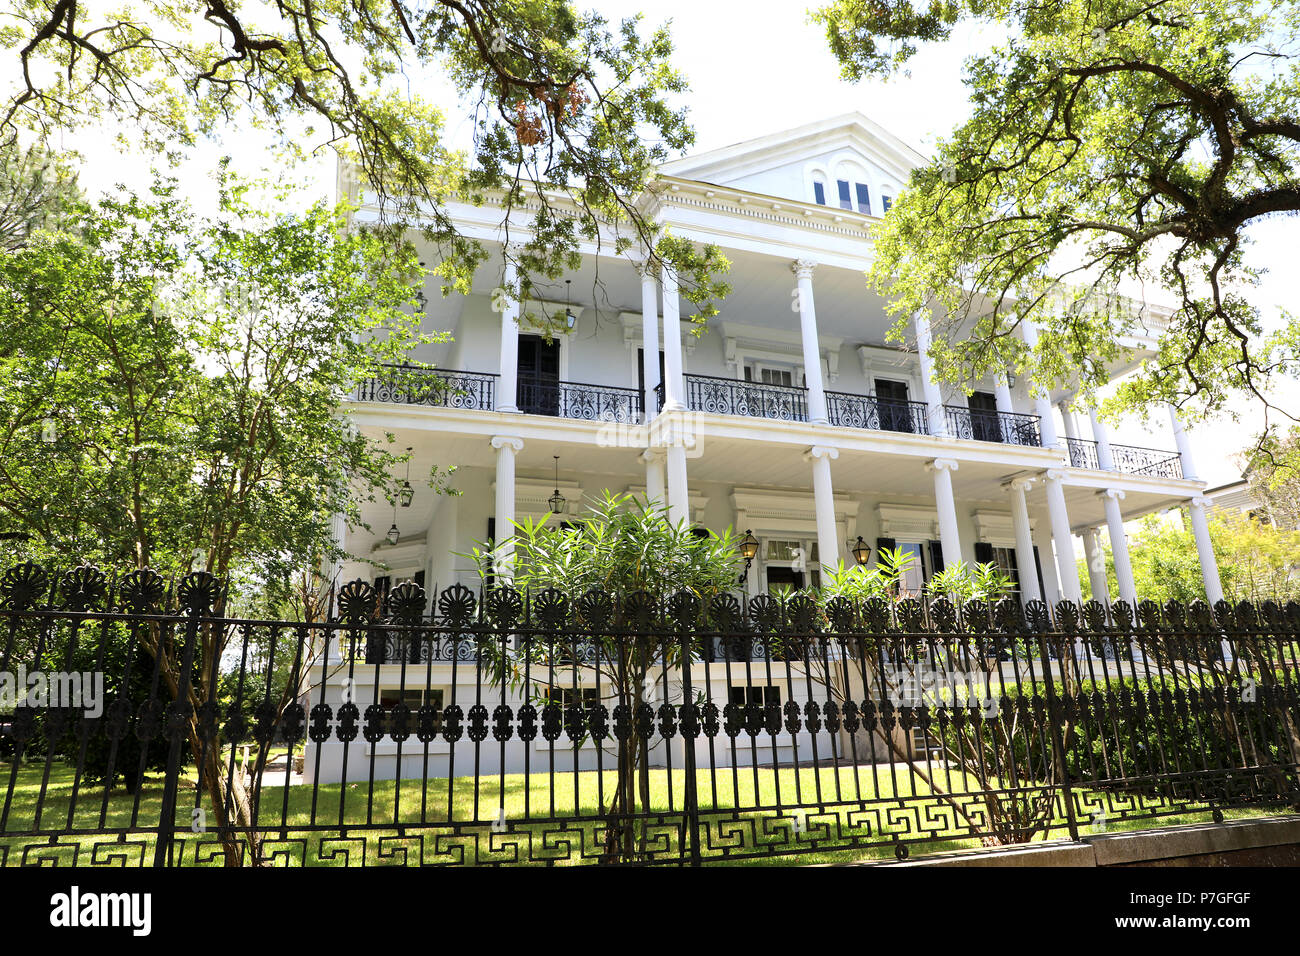 Historical Buckner Mansion New Orleans, Louisiana USA - Stock Image